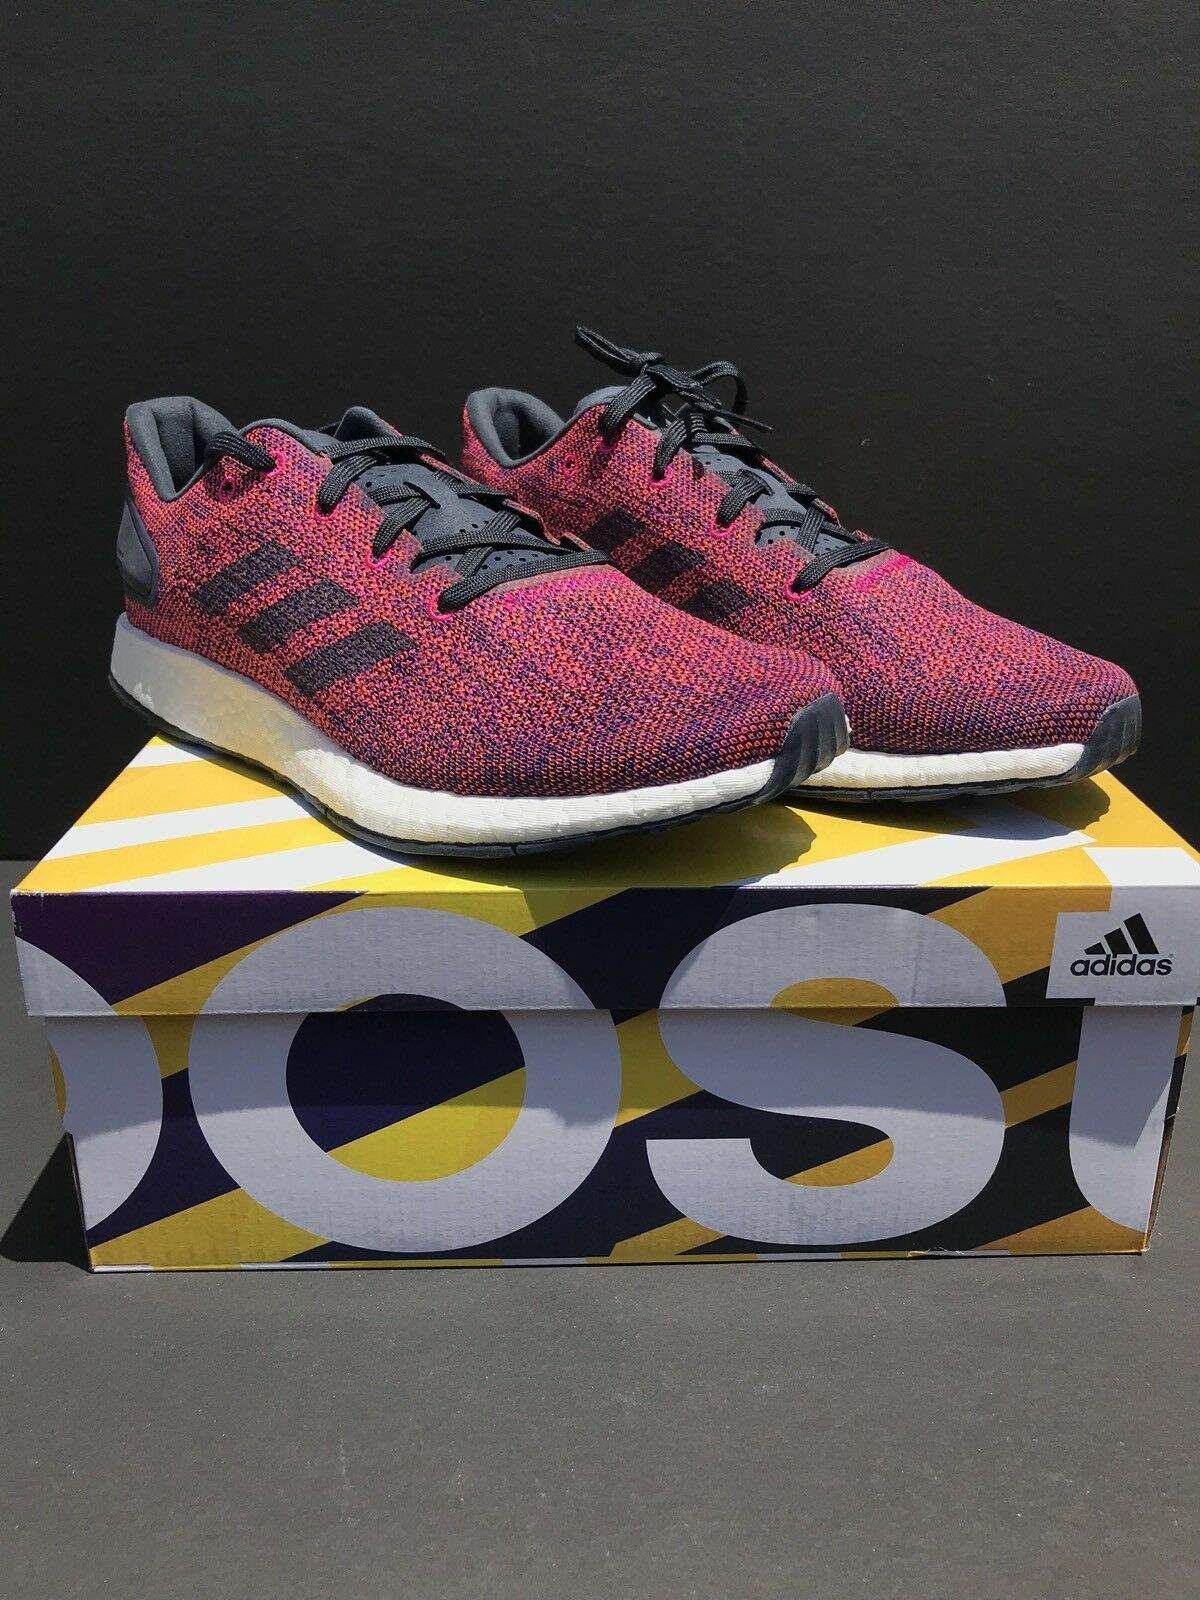 New Adidas PureBOOST DPR LTD CG2995 Mens Berry Navy shoes Size 8.5